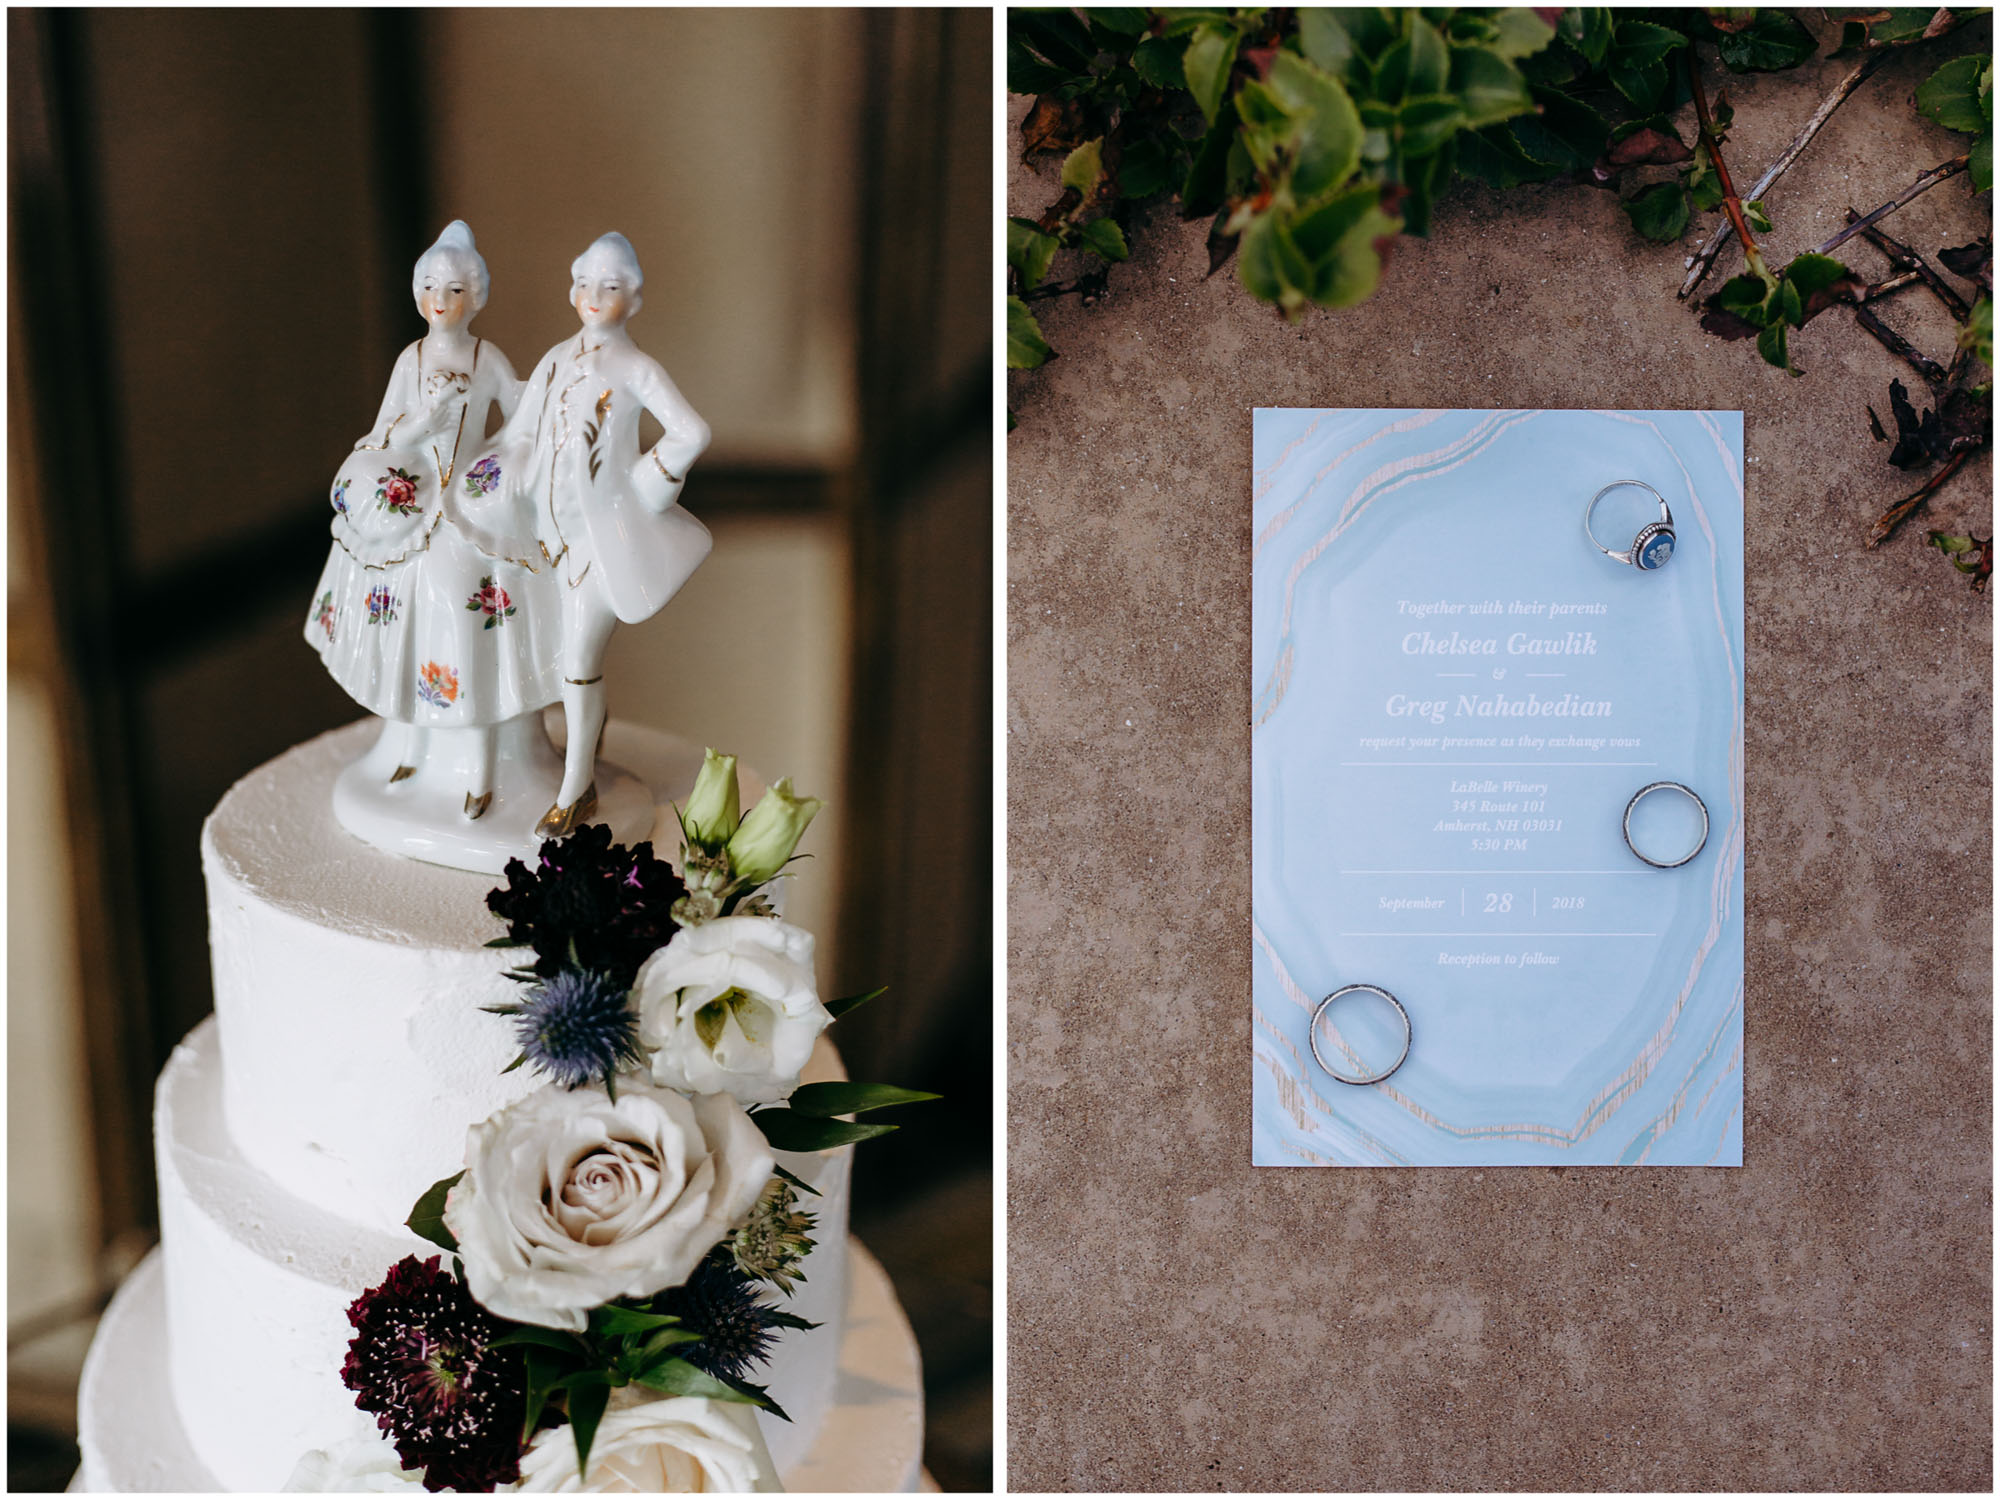 Unique wedding cake, invitations, and custom wedding rings - by Ashleigh Laureen Photography at LaBelle Winery in Amherst, New Hampshire